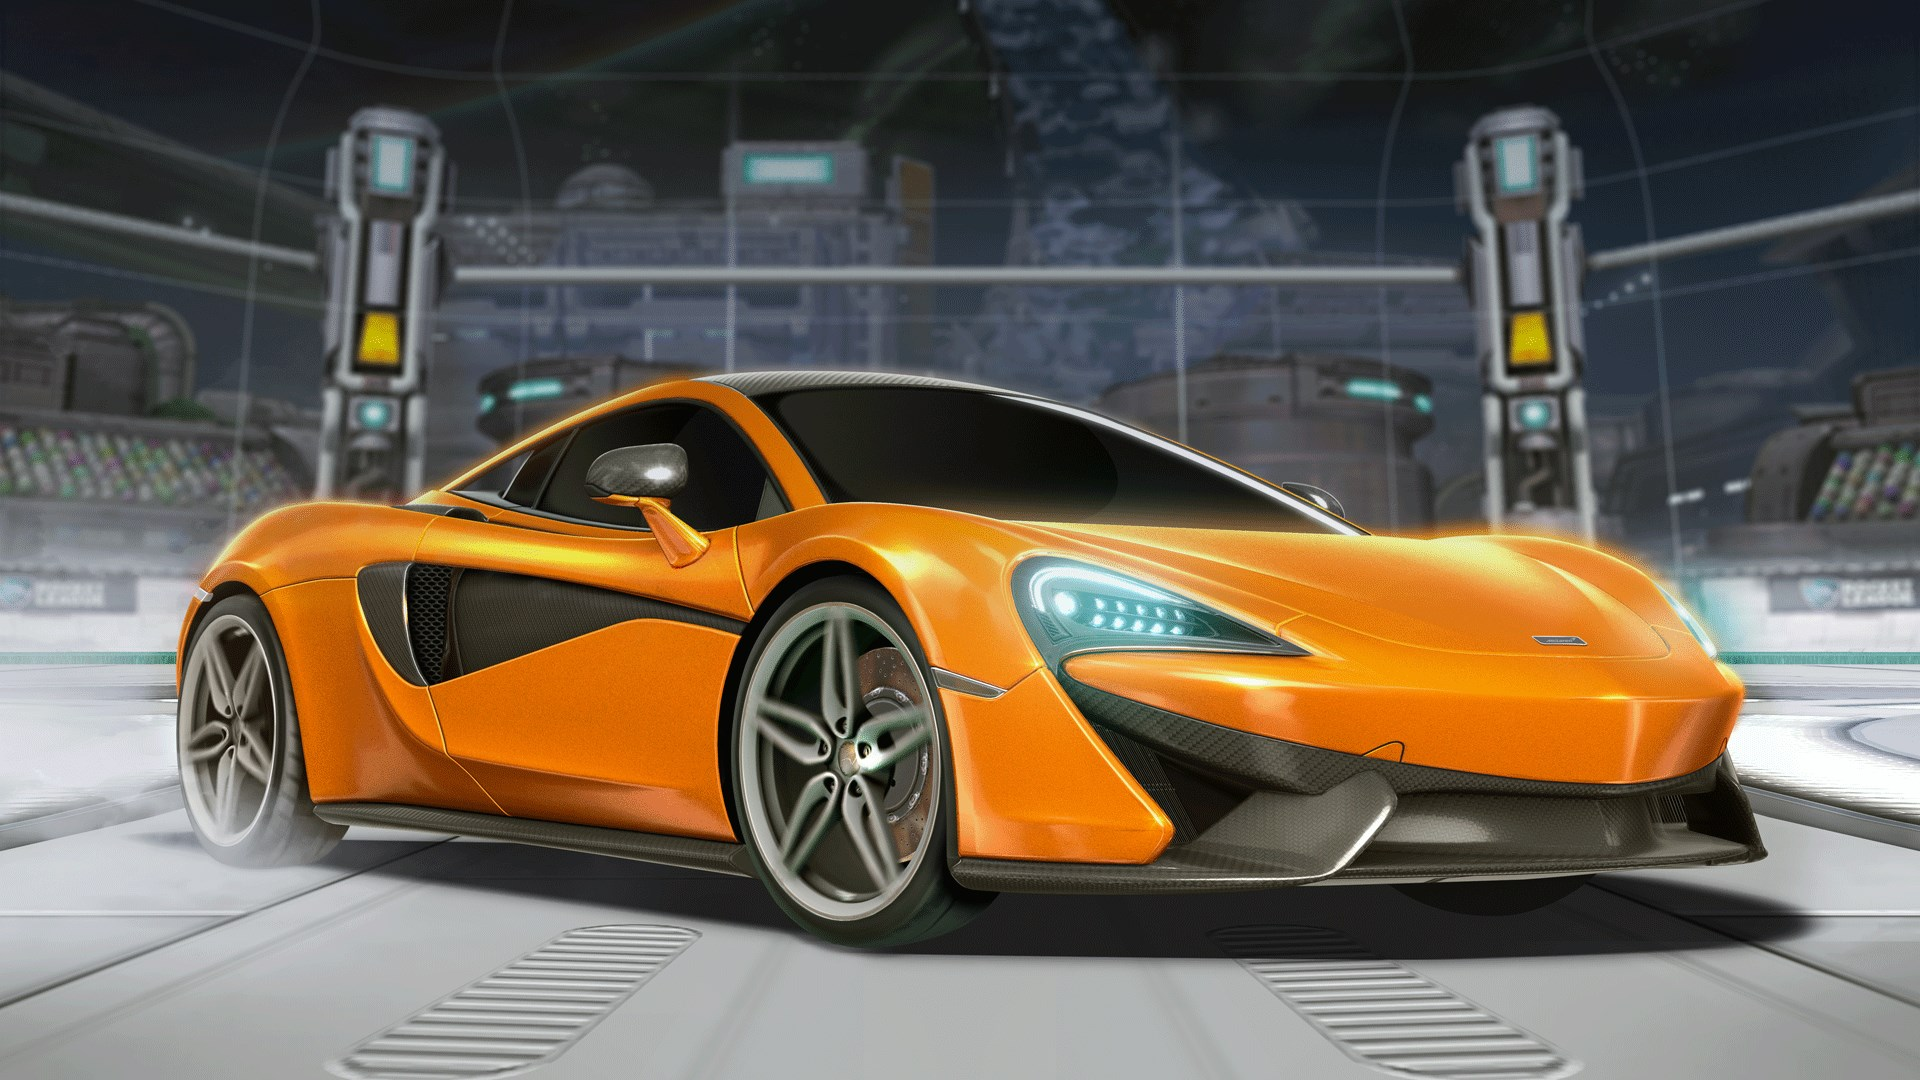 Rocket League® - McLaren 570S Car Pack